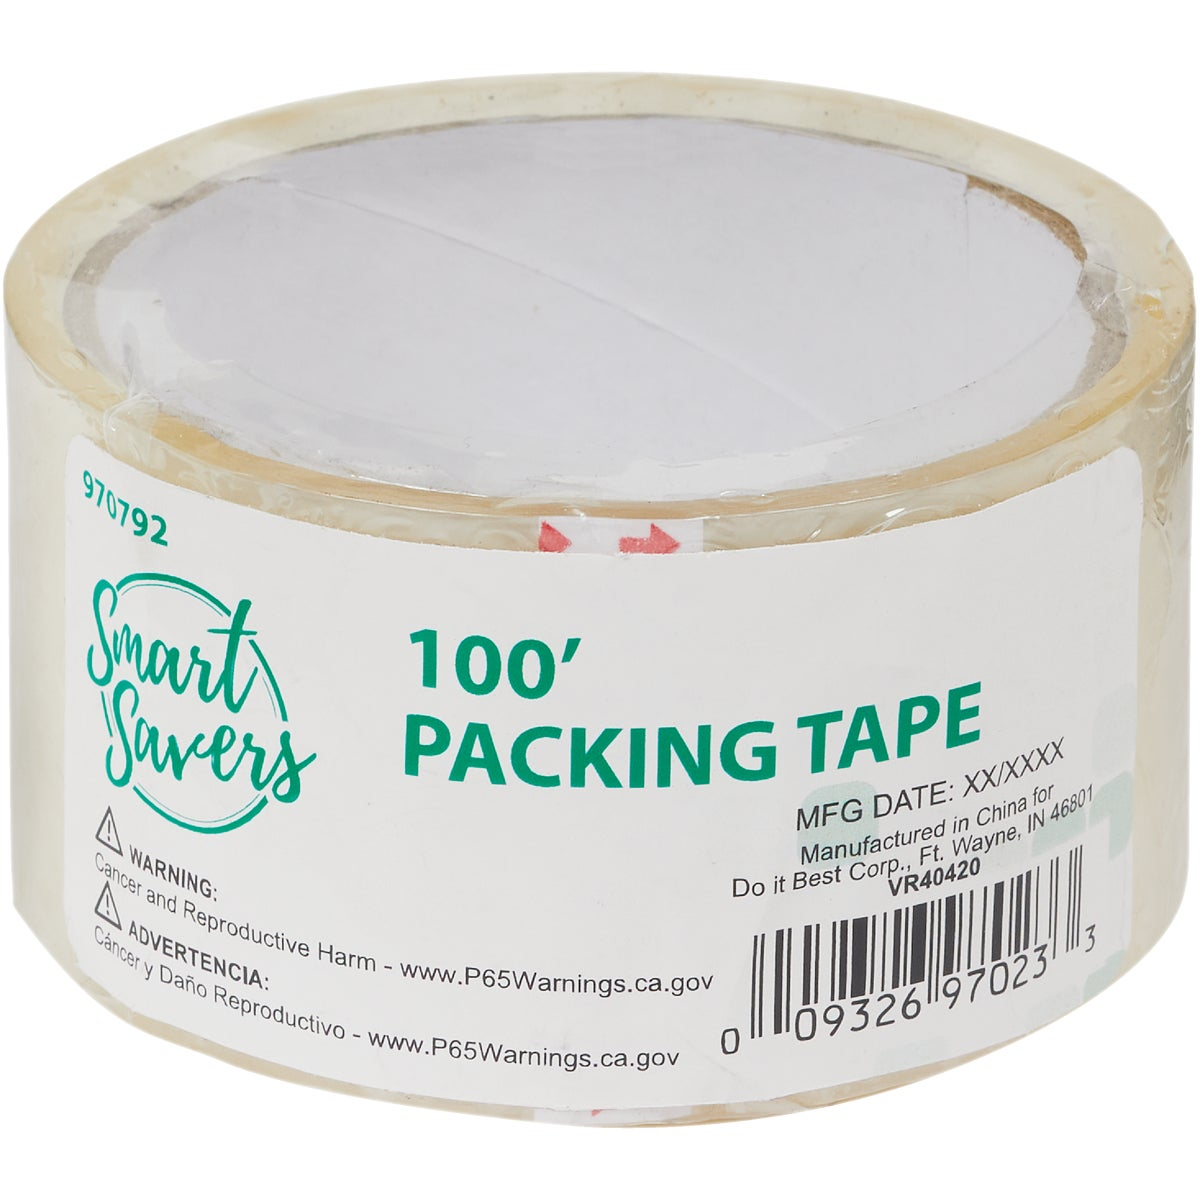 2PK PACKING TAPE